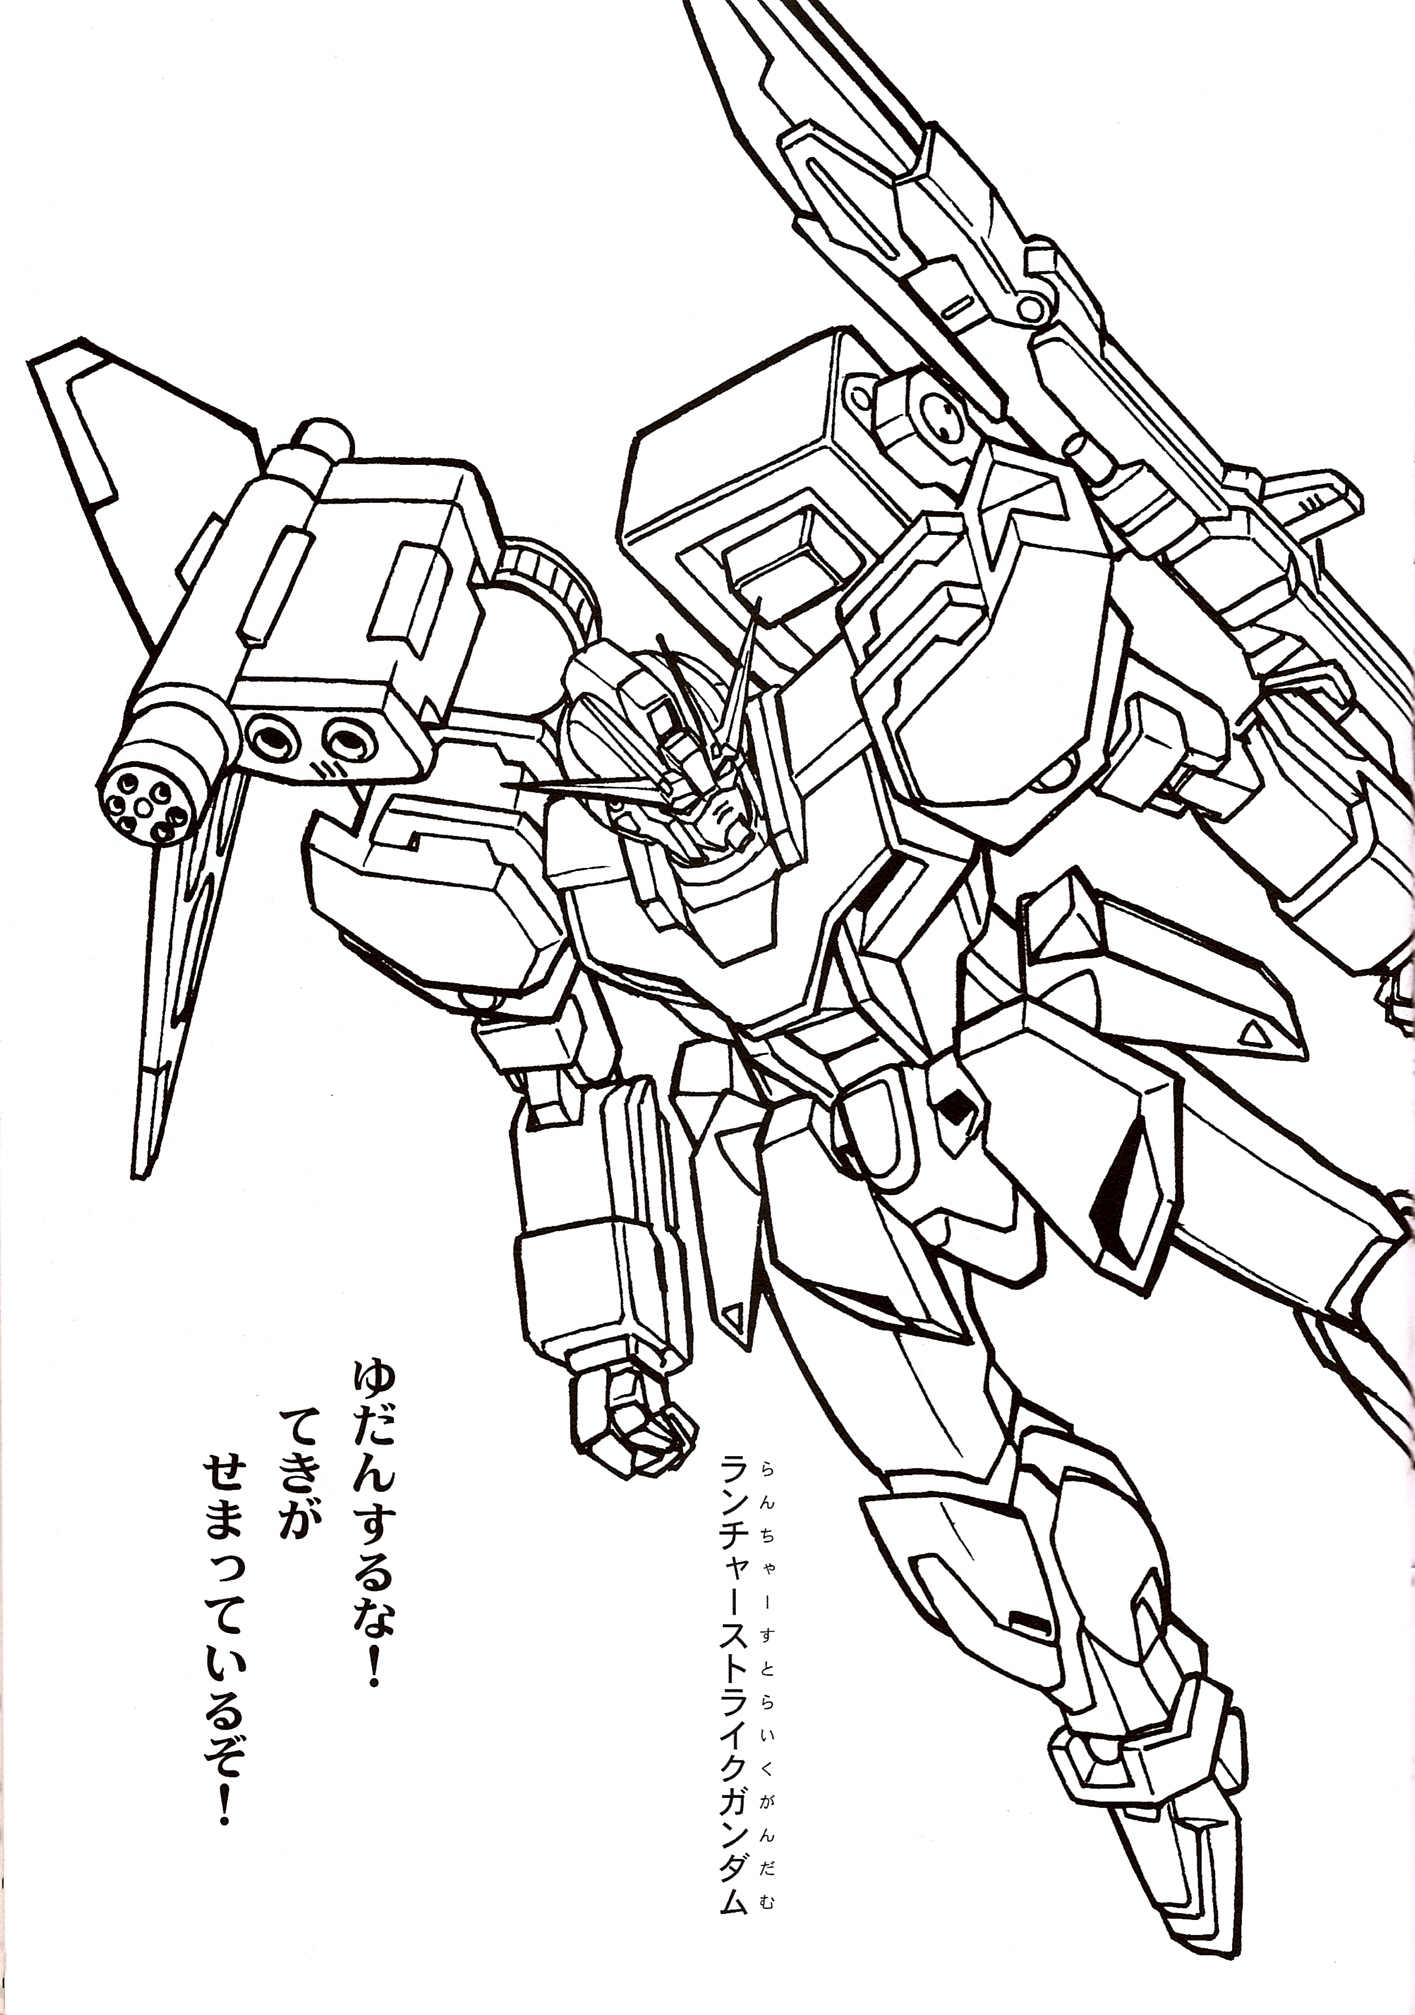 Gundam coloring pages for Gundam wing coloring pages